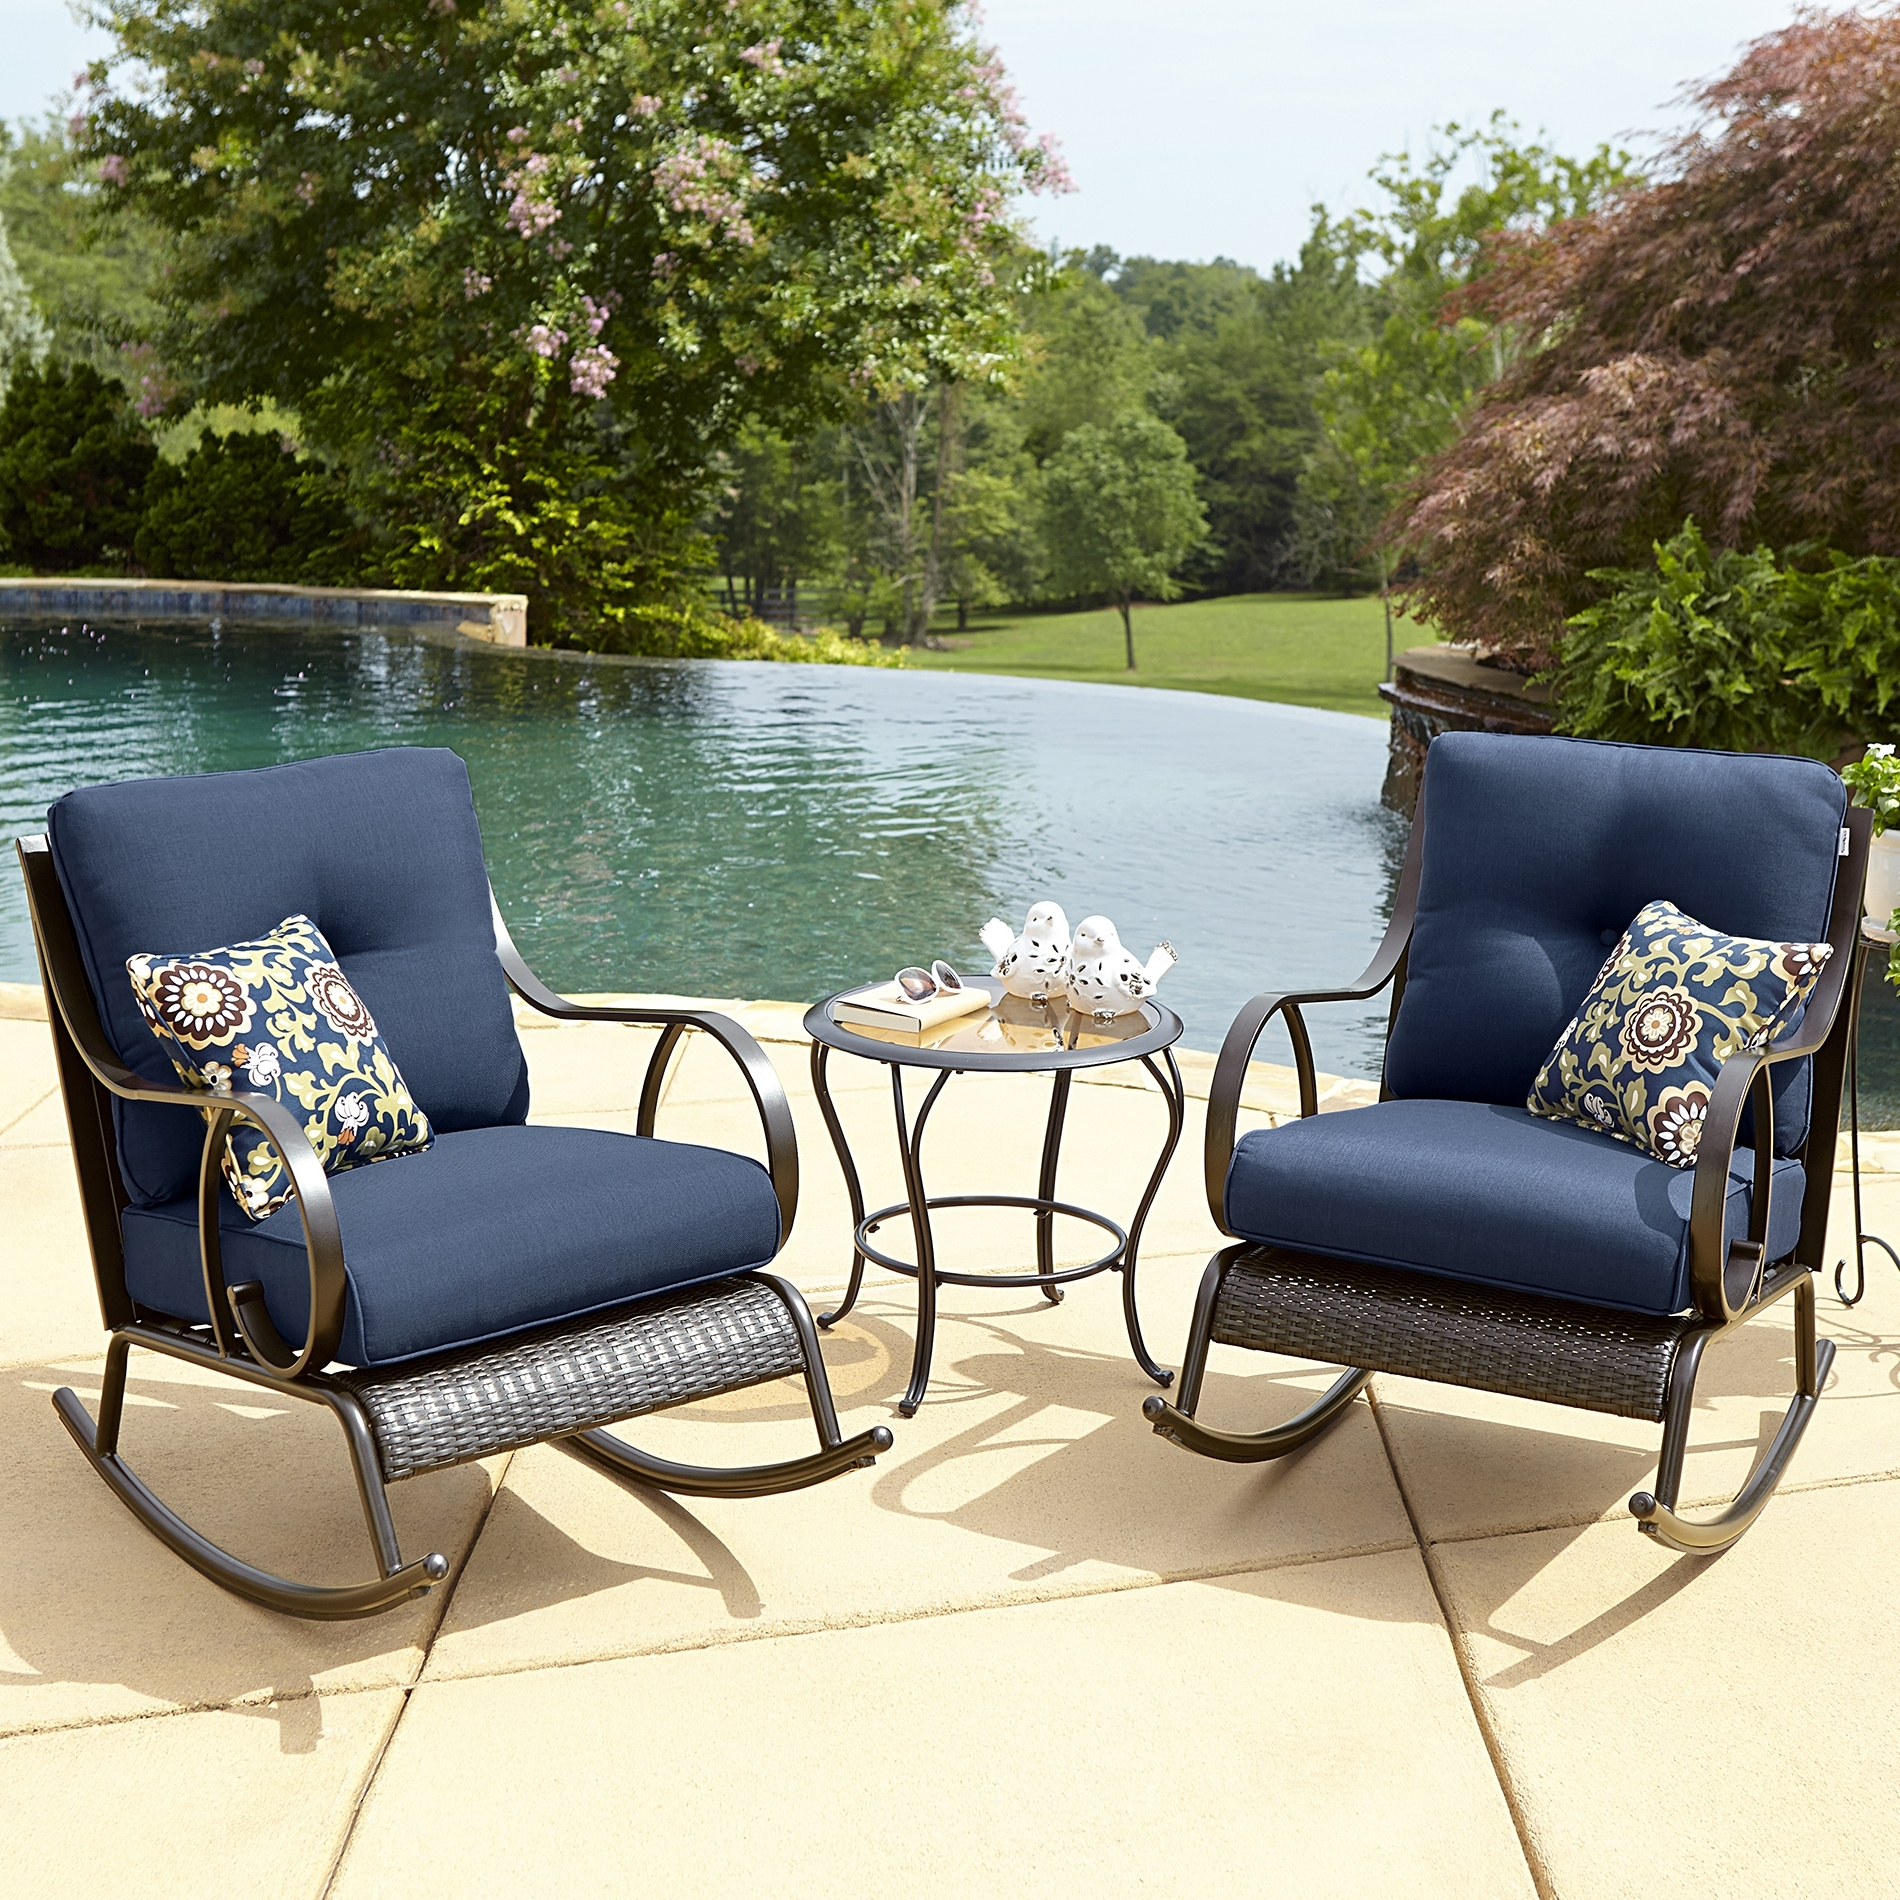 Outdoor Rocking Chairs With Table Inside Well Liked Boy Outdoor Avery Piece Bistro Rocking Chair Set Blue Kmart Prod (View 9 of 15)